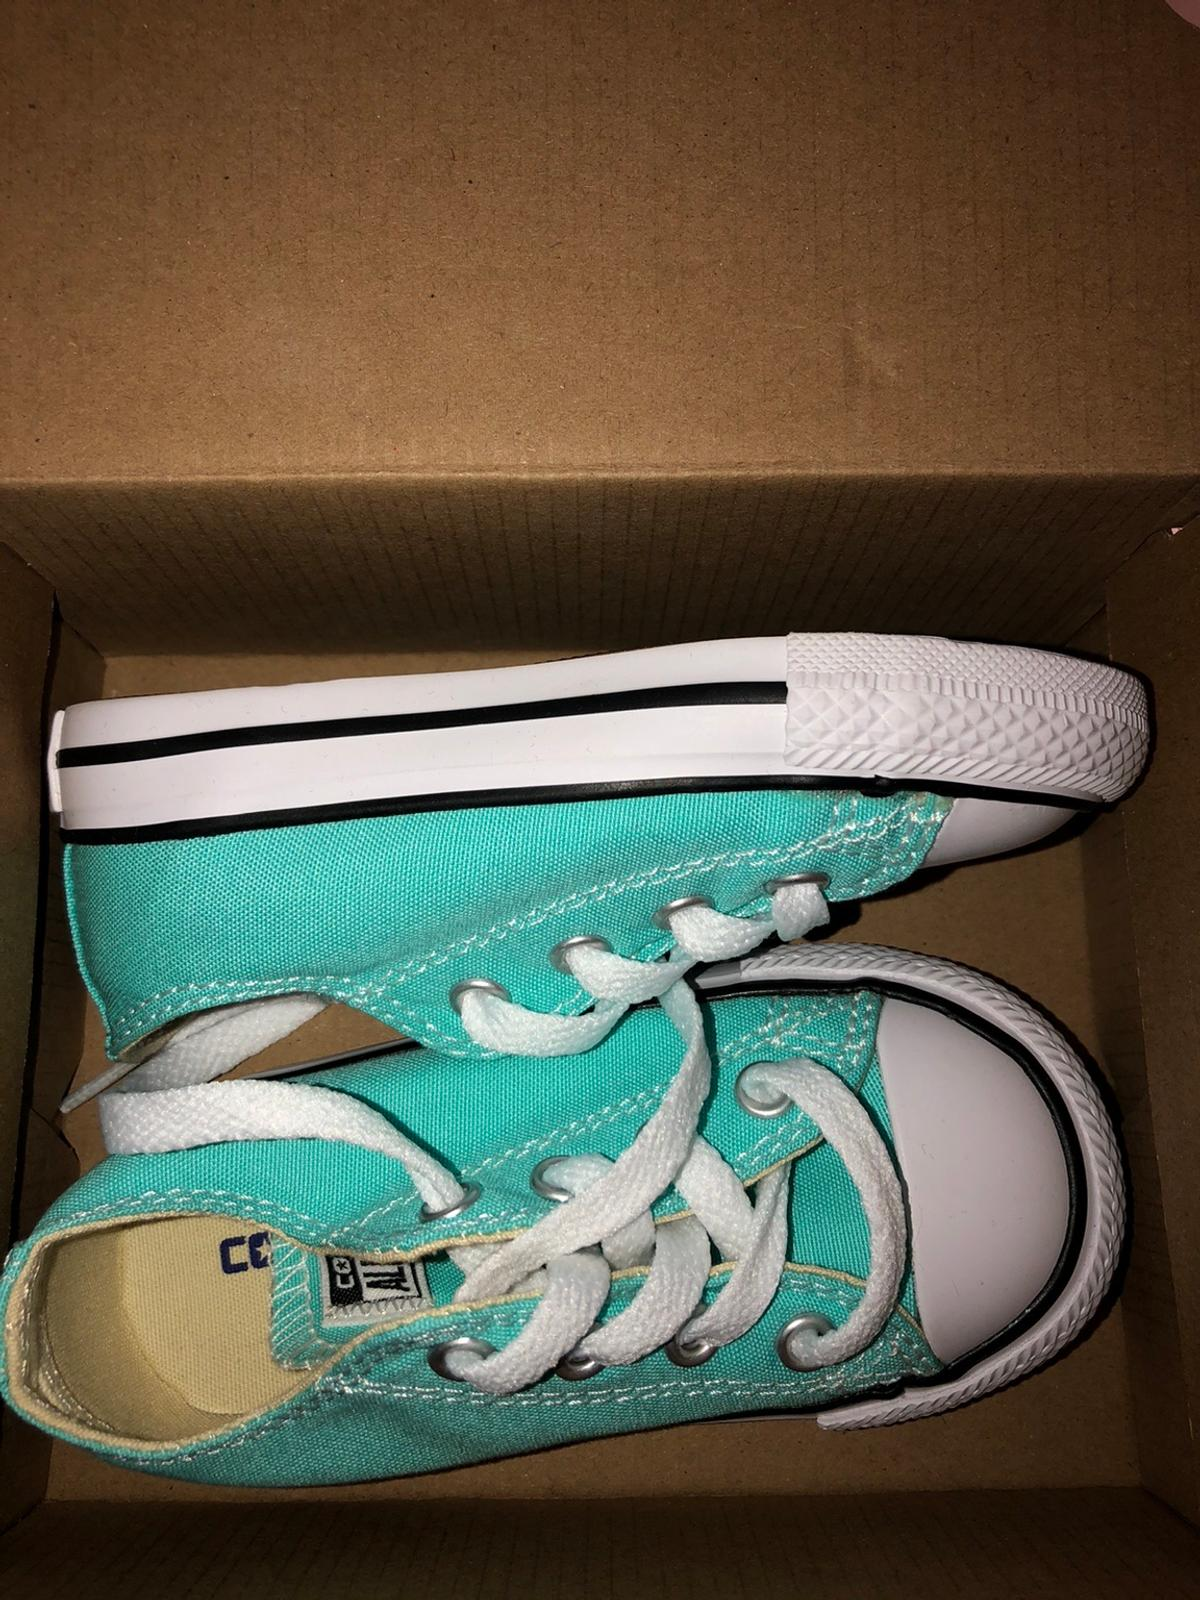 Brand new turquoise size 6 infant girls converse All new in box Collection from By howdles butchers Postage available for £3 if paid via PayPal